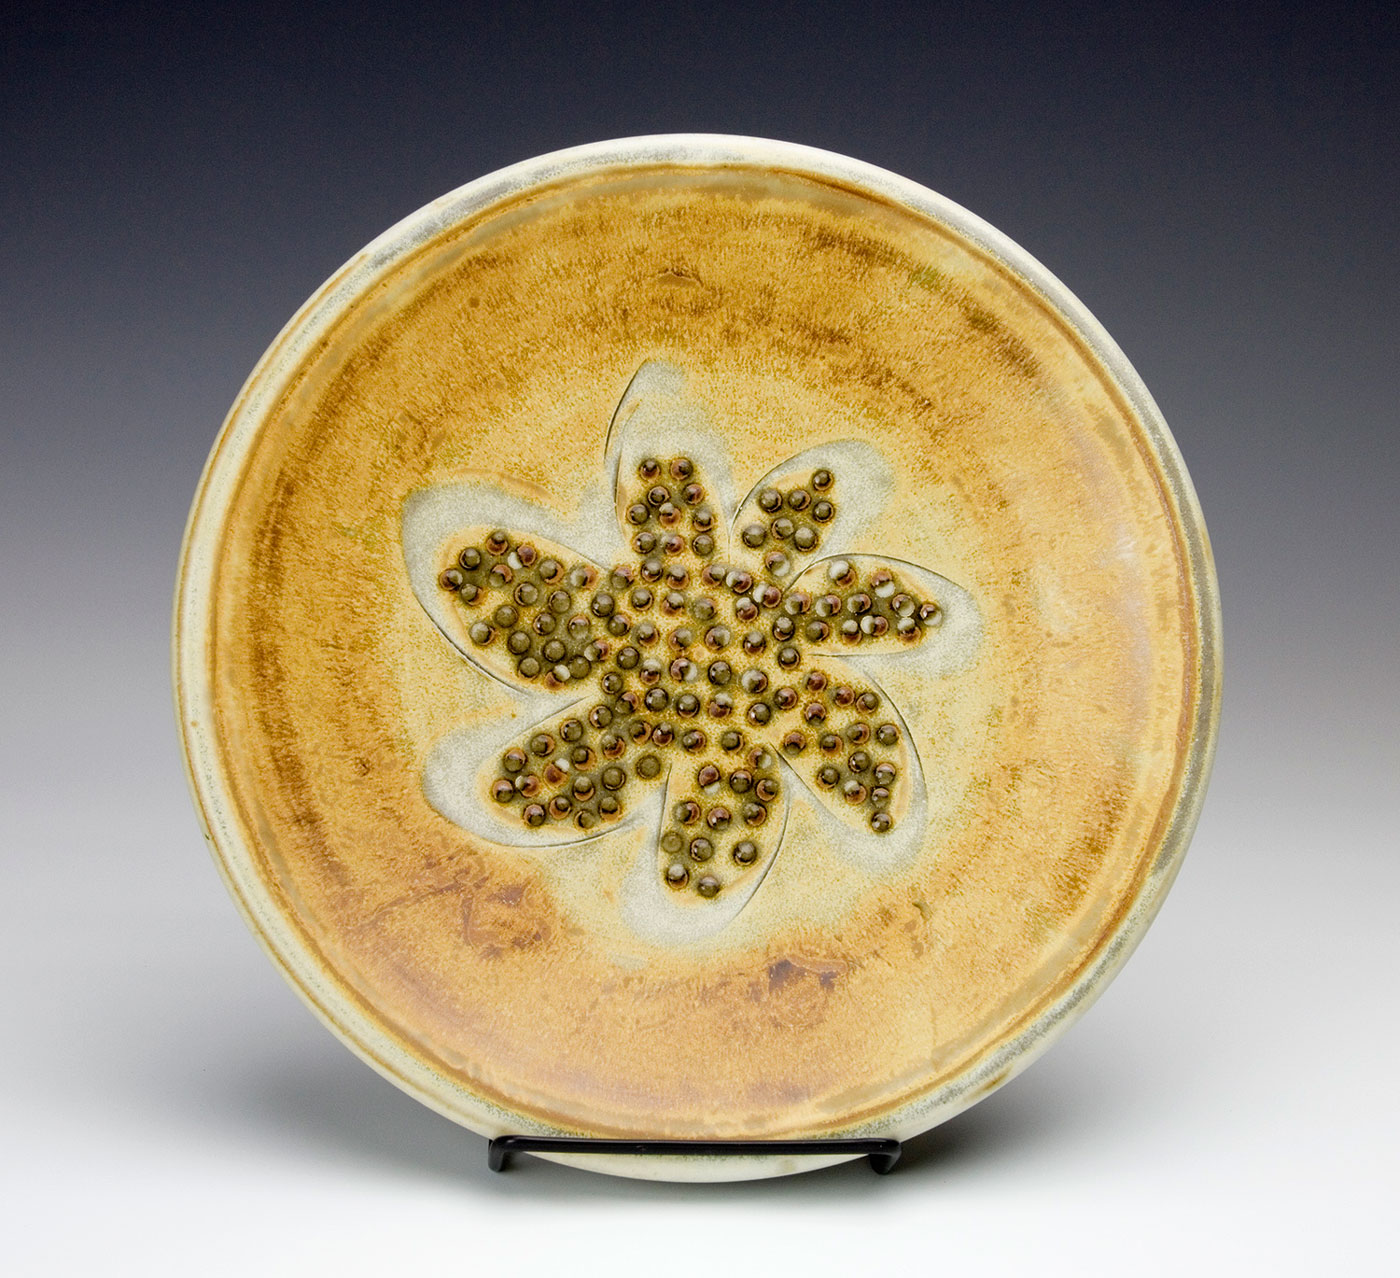 Plate-Abstract-Flower-design-on-plate-Samantha-Henneke-Seagrove-Pottery.jpg